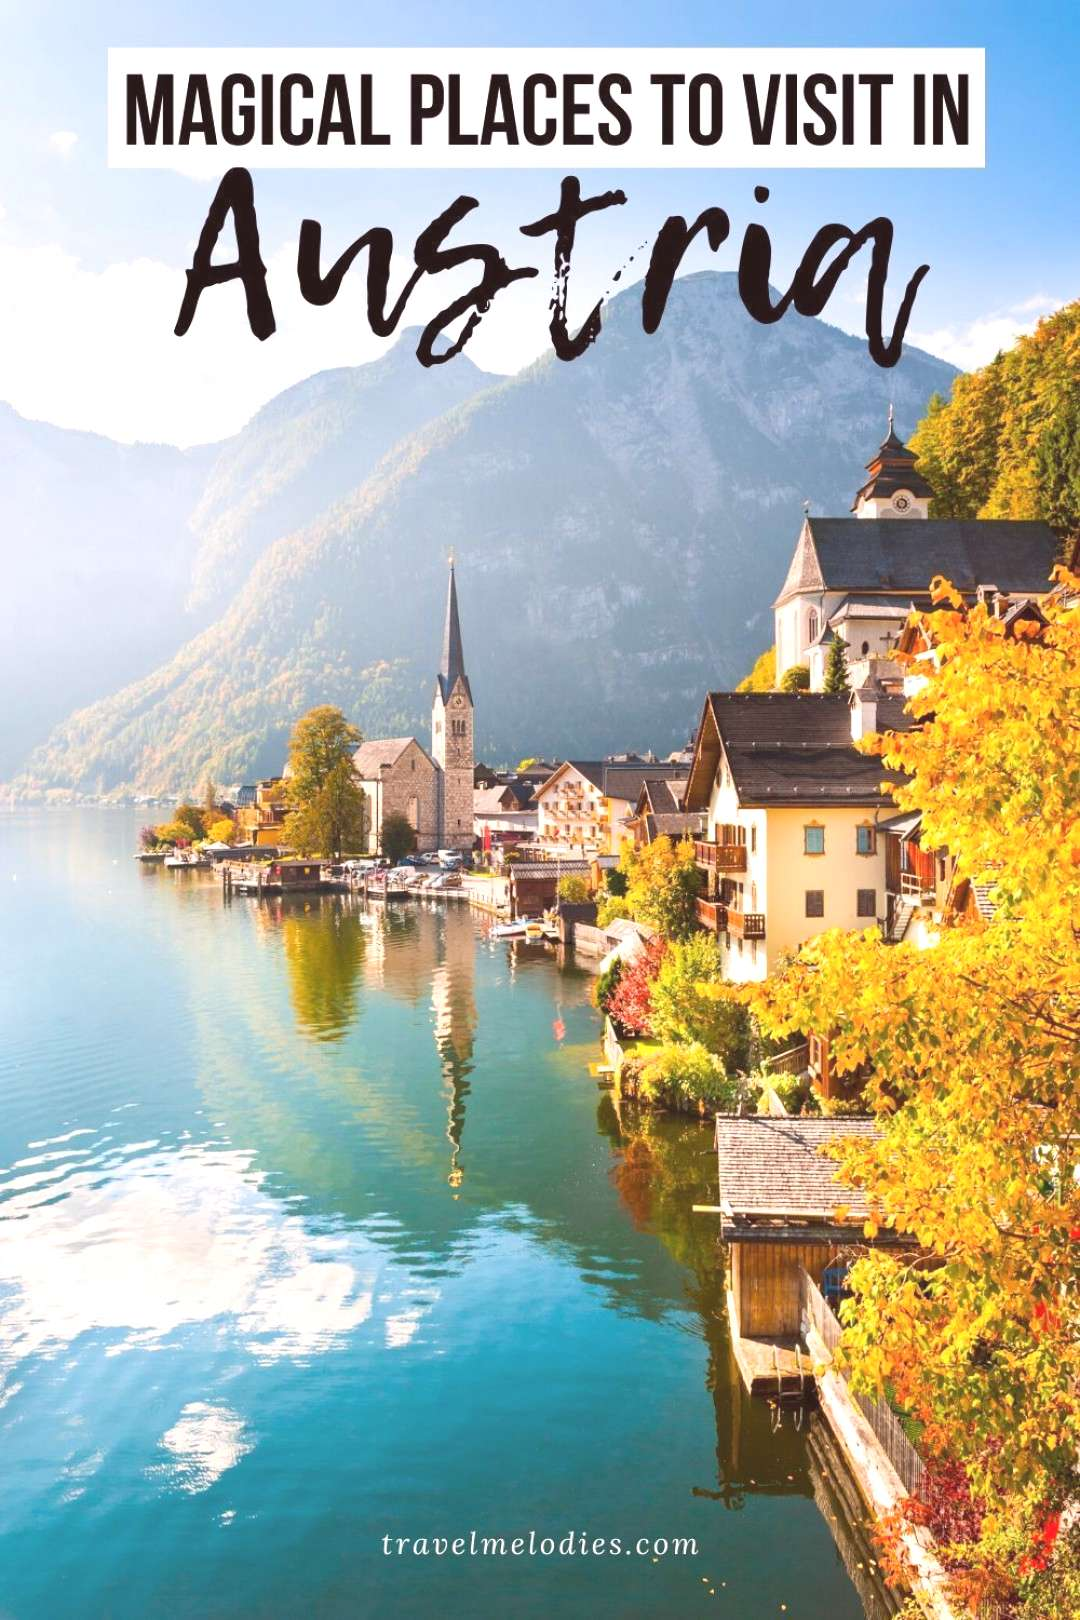 Planning a trip to Austria? We have listed out the beautiful places to visit in Austria to spark yo